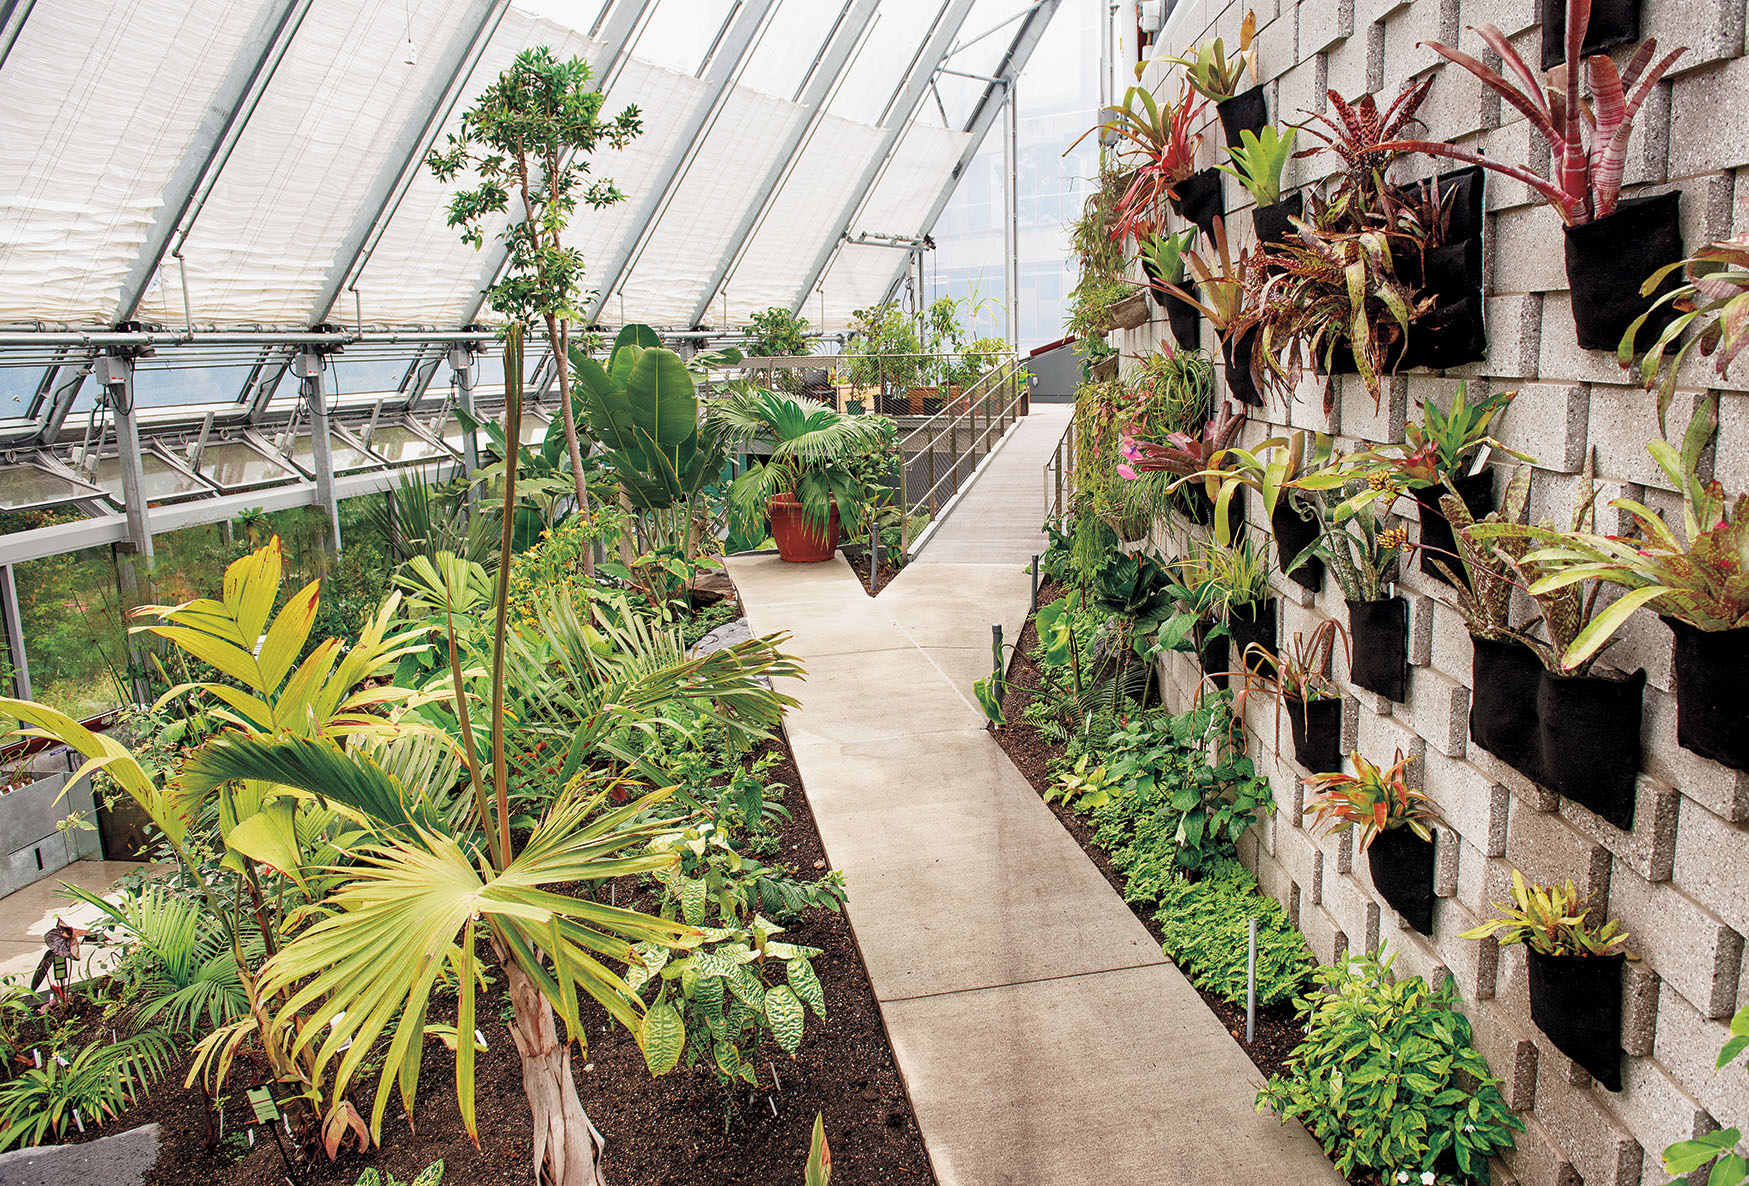 A photo of the dry biome in the conservatory shows cacti, a walkway, and a wall display of orchids and epiphytes.